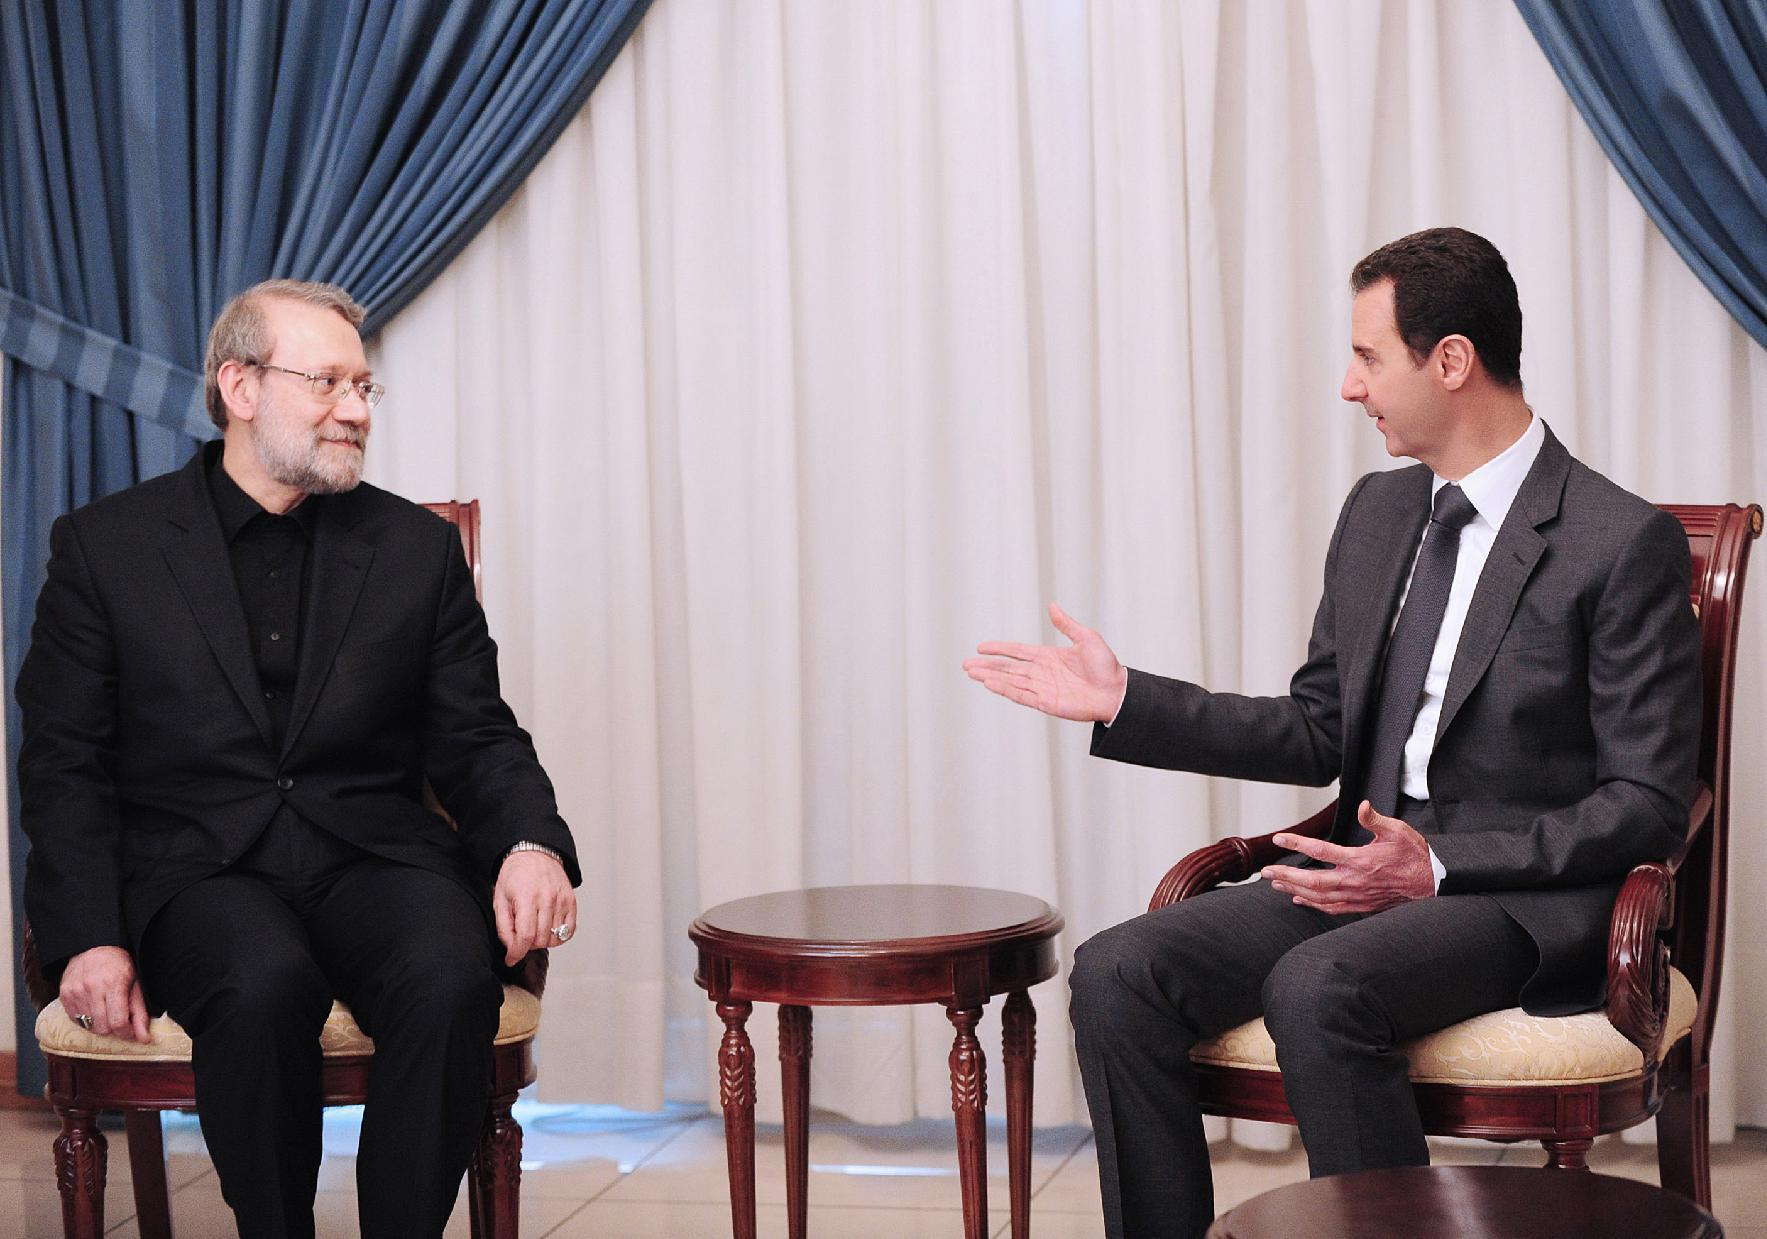 Assad tells Iran's Larijani he backs local truces